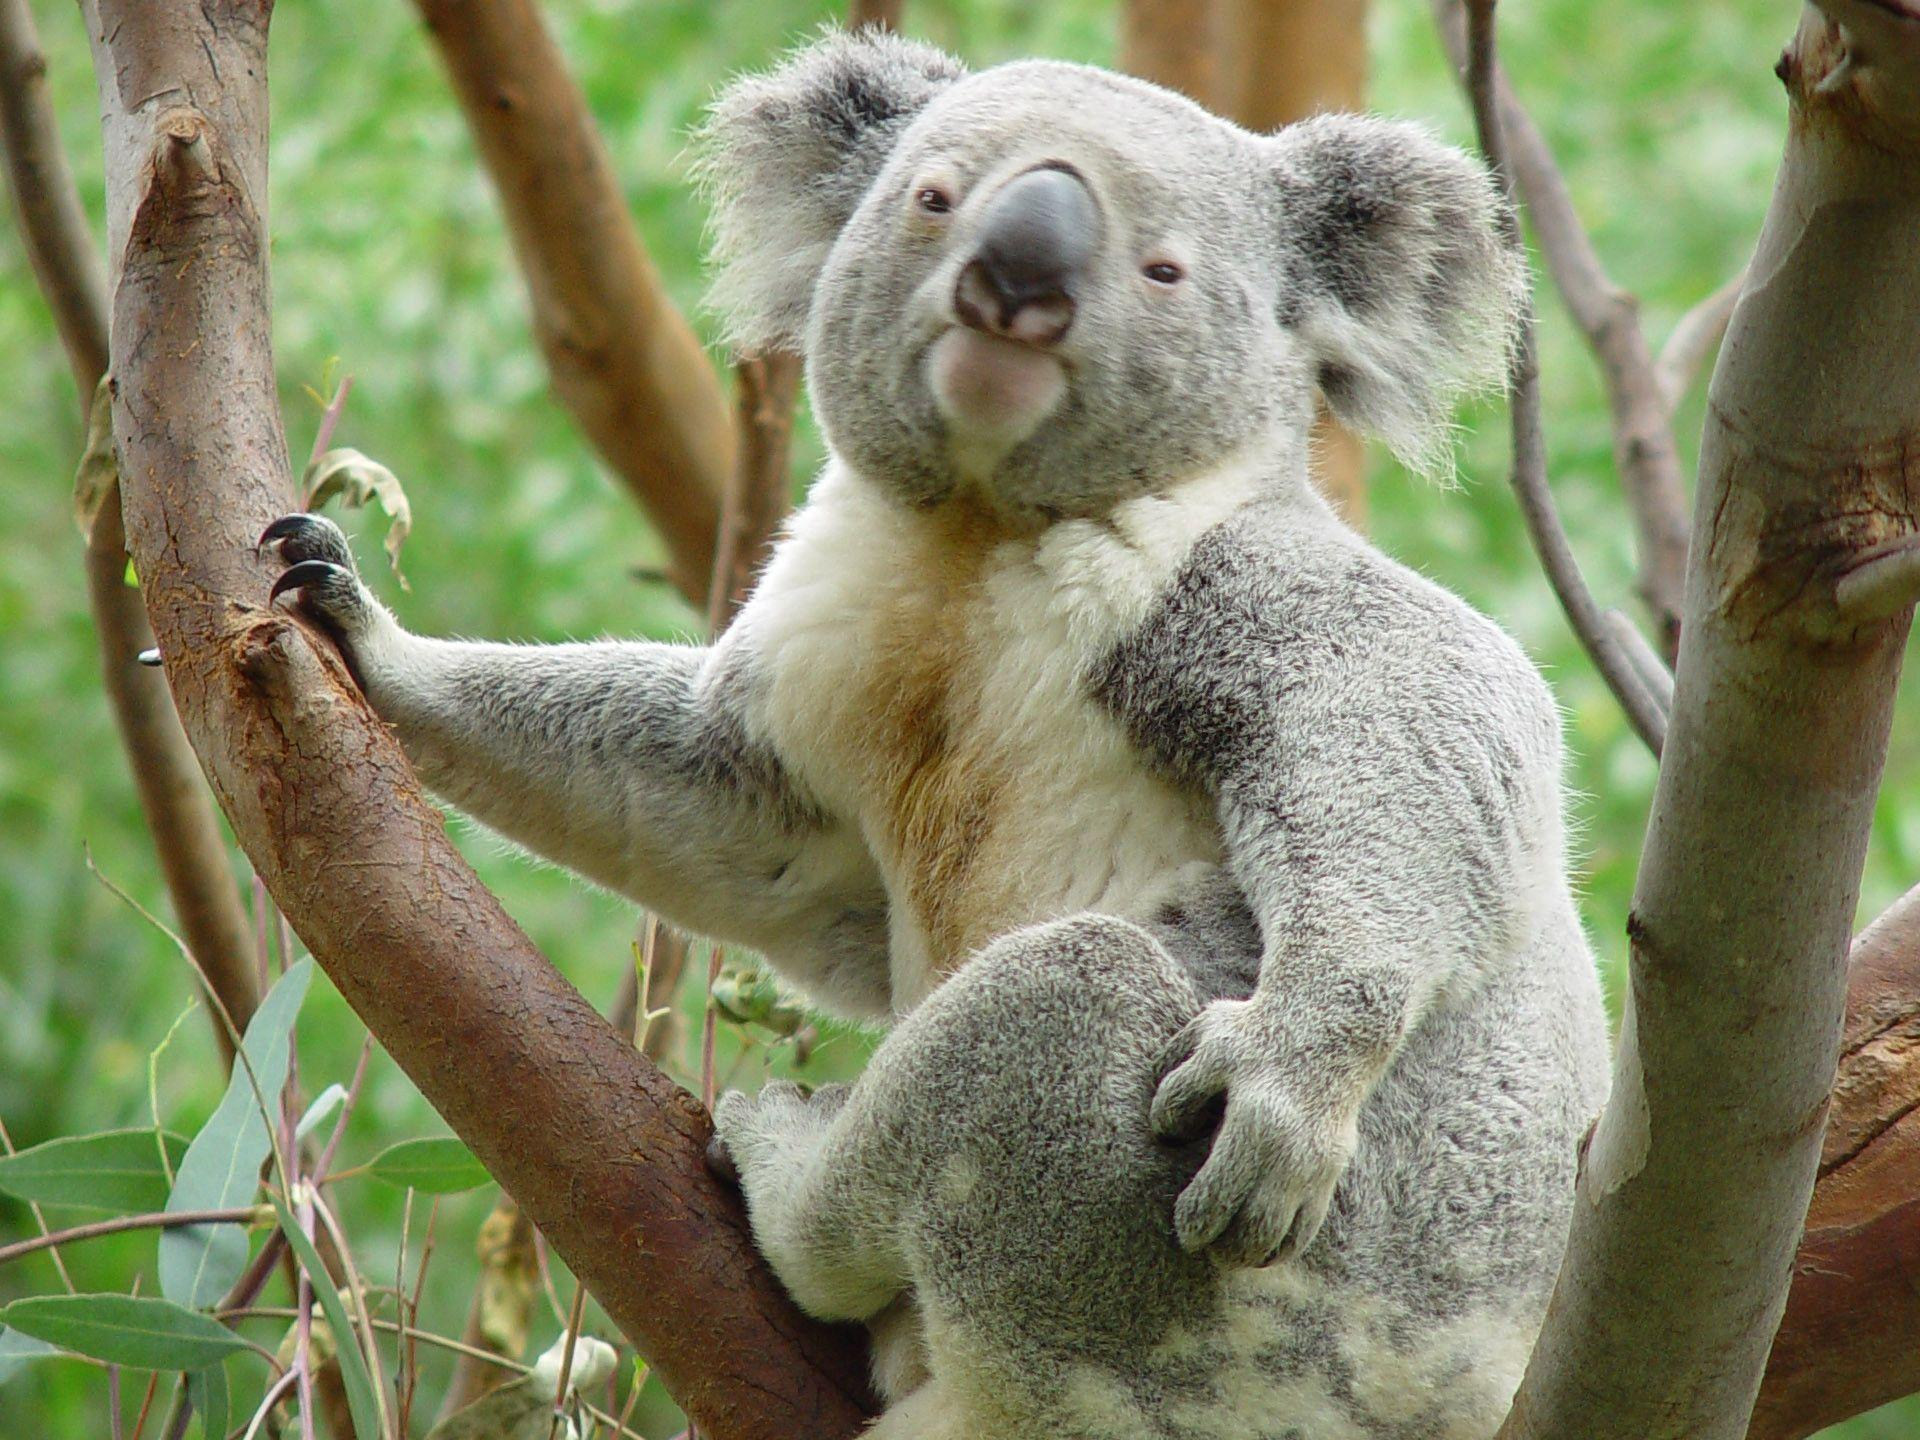 Koala Wallpaper Windows 7 25 Nice Wallpaper 960x800 HD Wallpaper ...